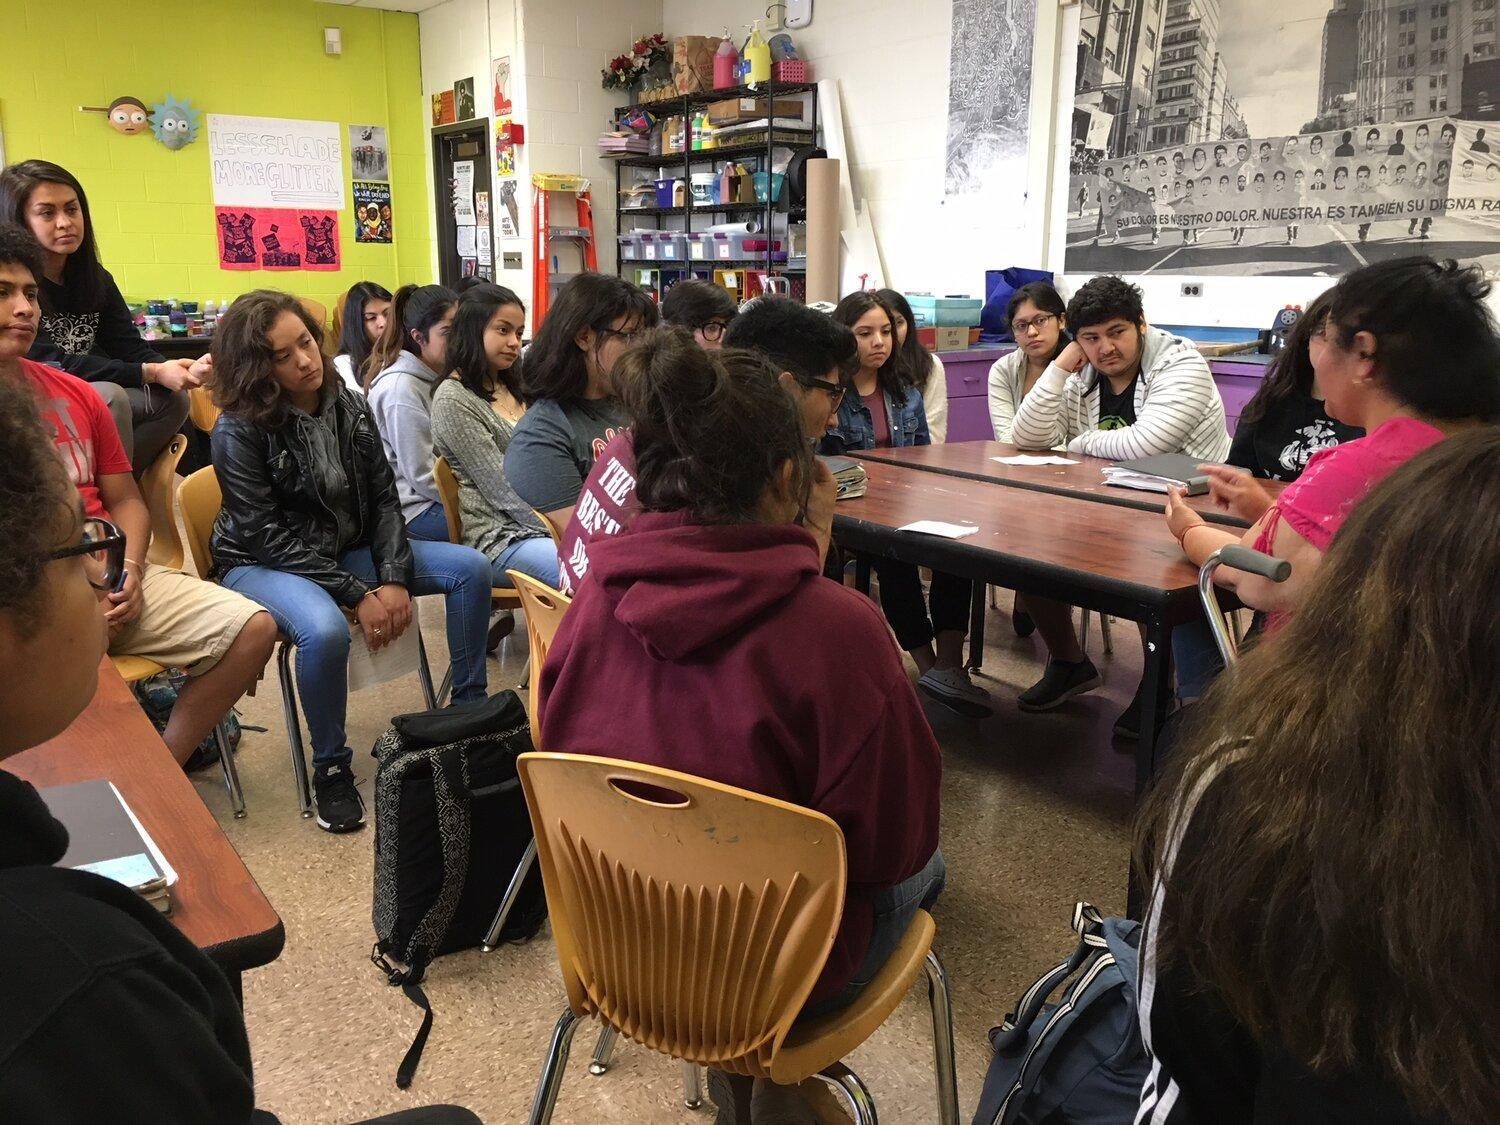 Dr Sandra Mendez talks to maestra Paulina Camacho and her students at Benito Juarez about the protests at Froebel School in 1973, which paved the way for the eventual commitment from Mayor Daley to build Benito Juarez High School. (2018)